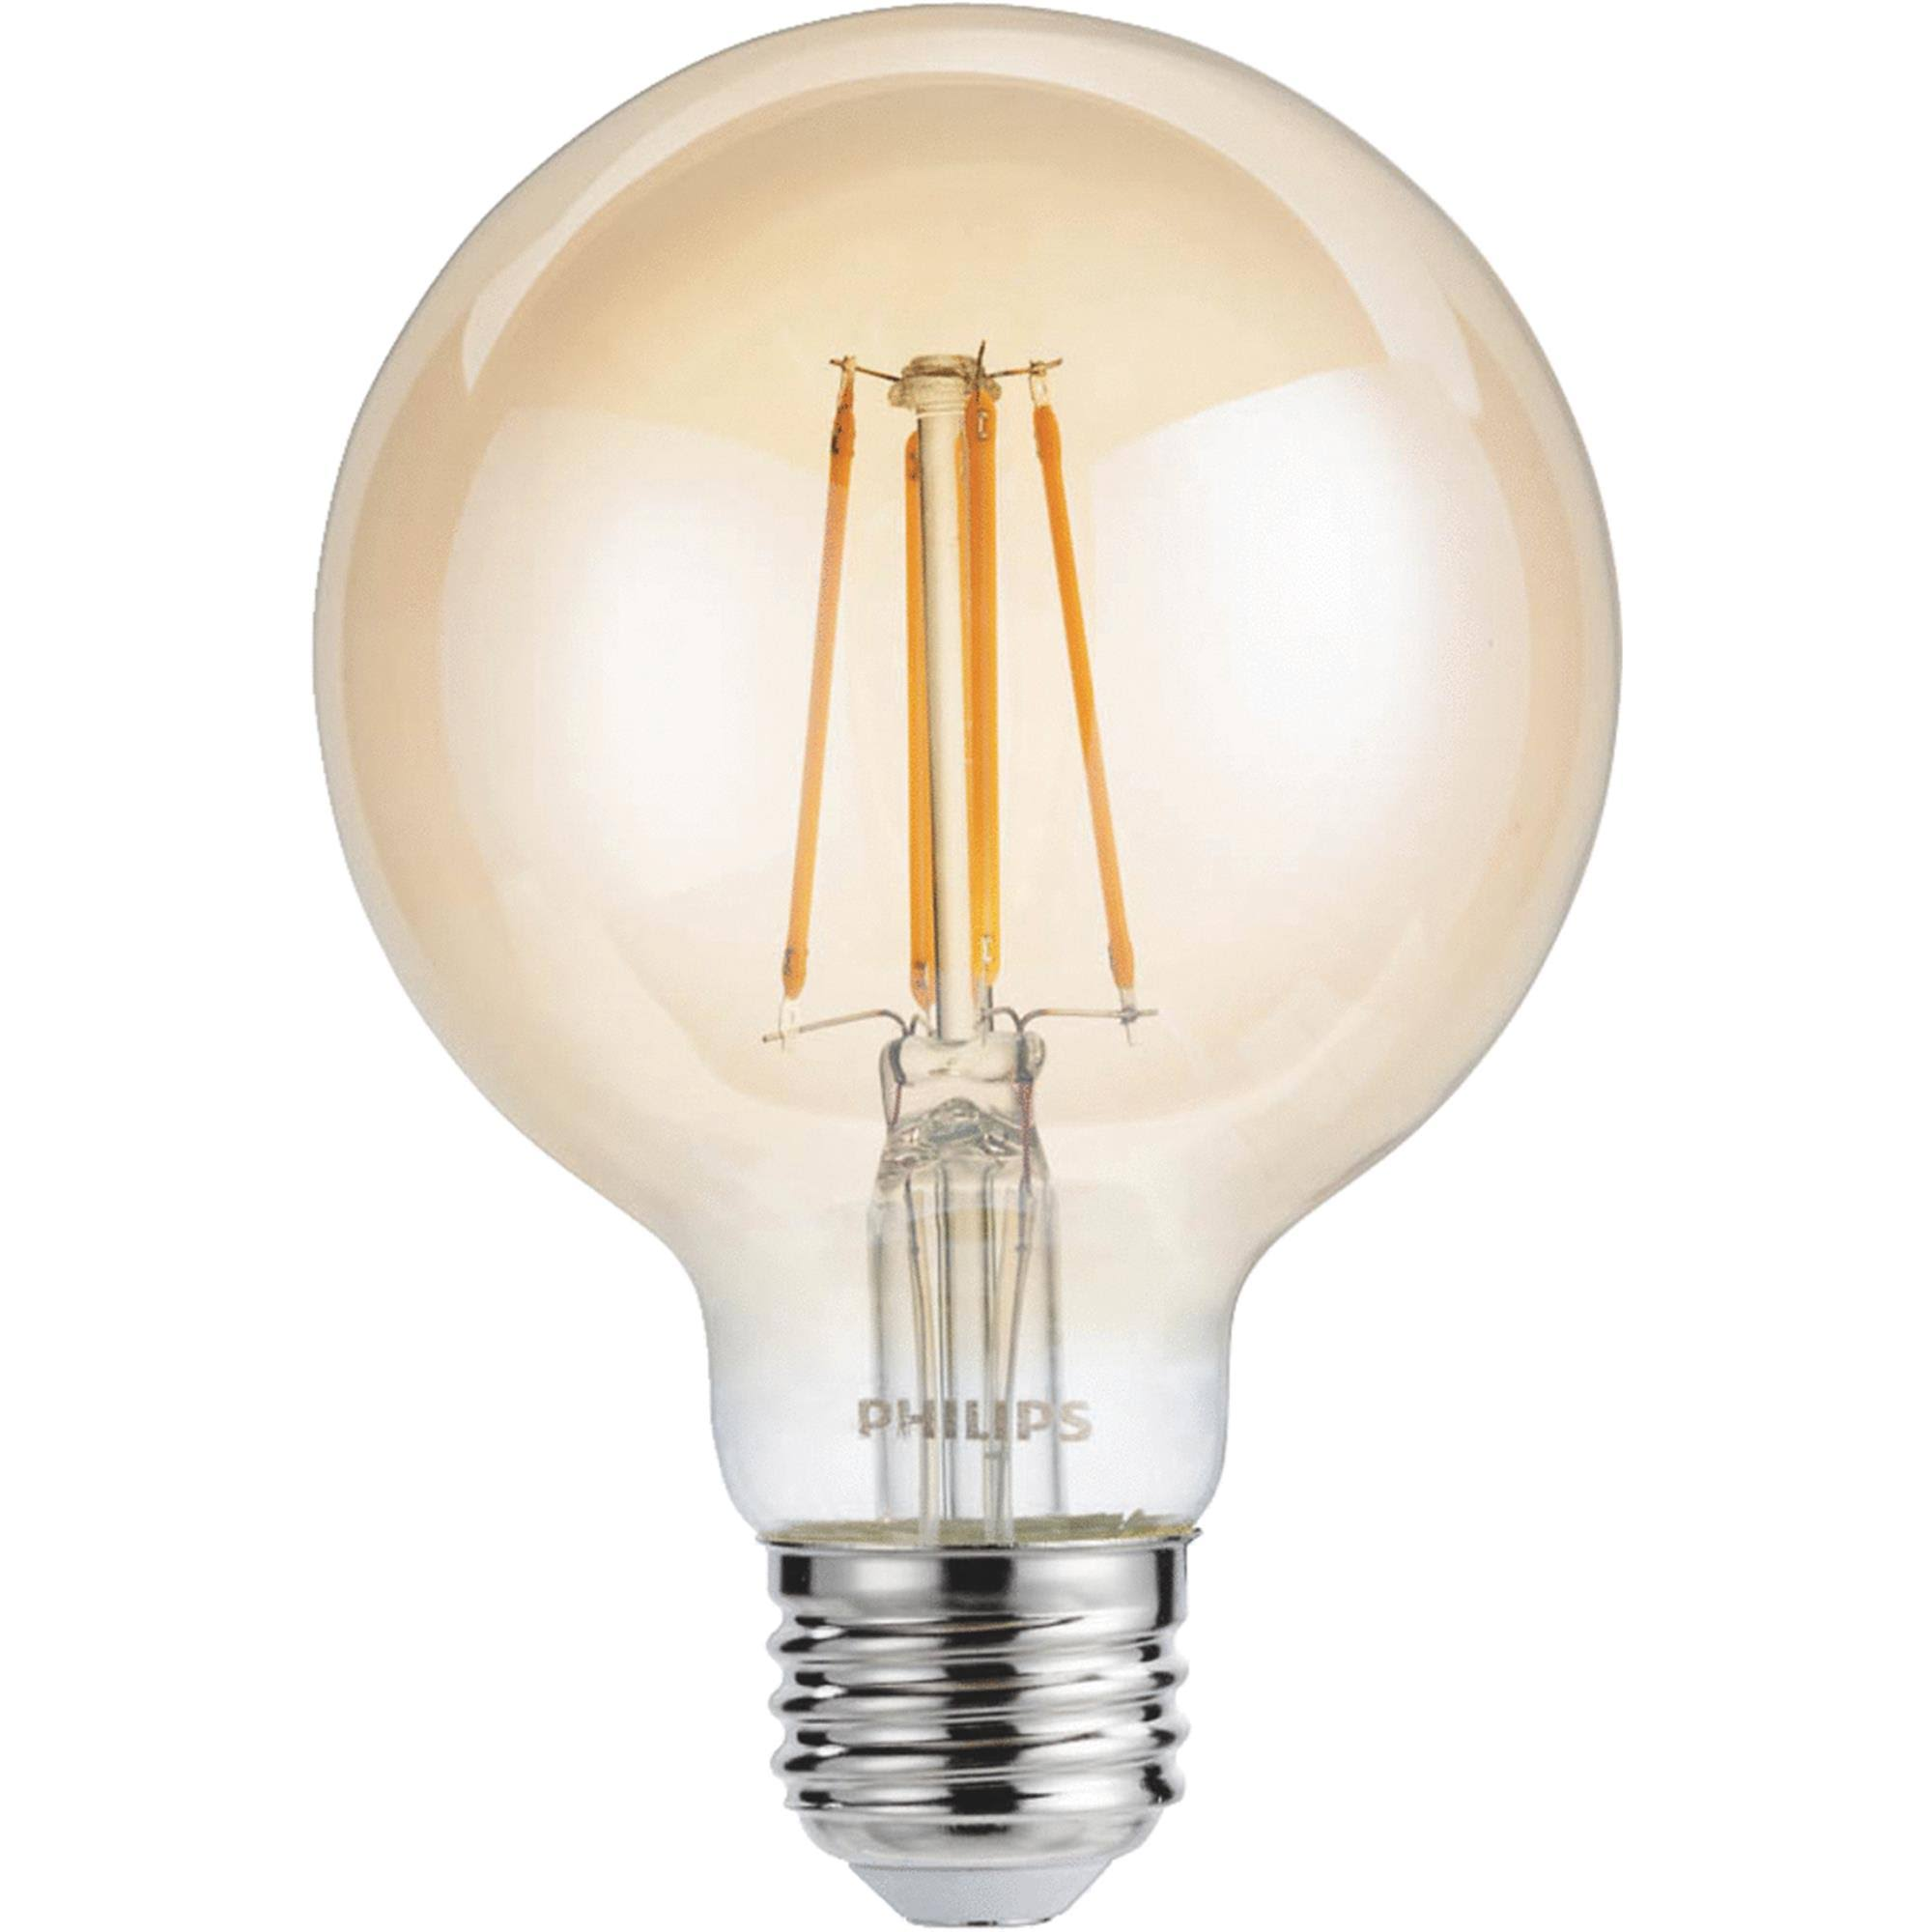 Philips Light Bulb, LED, Amber Light, 4.5 Watts